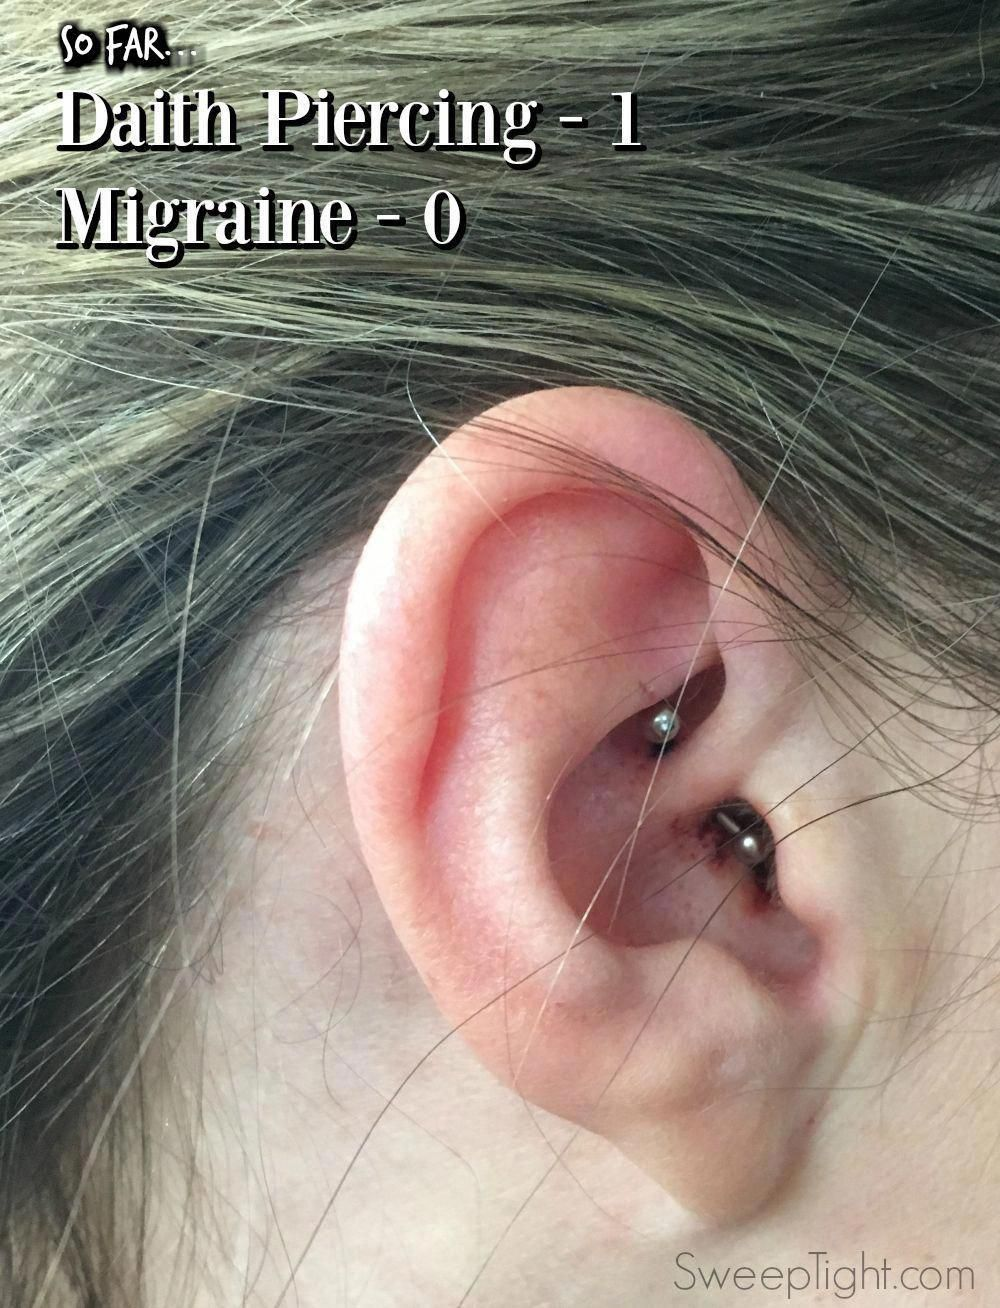 Aspirin for piercing bump  I Tried the Daith Piercing for Migraines  Headaches And Migraines